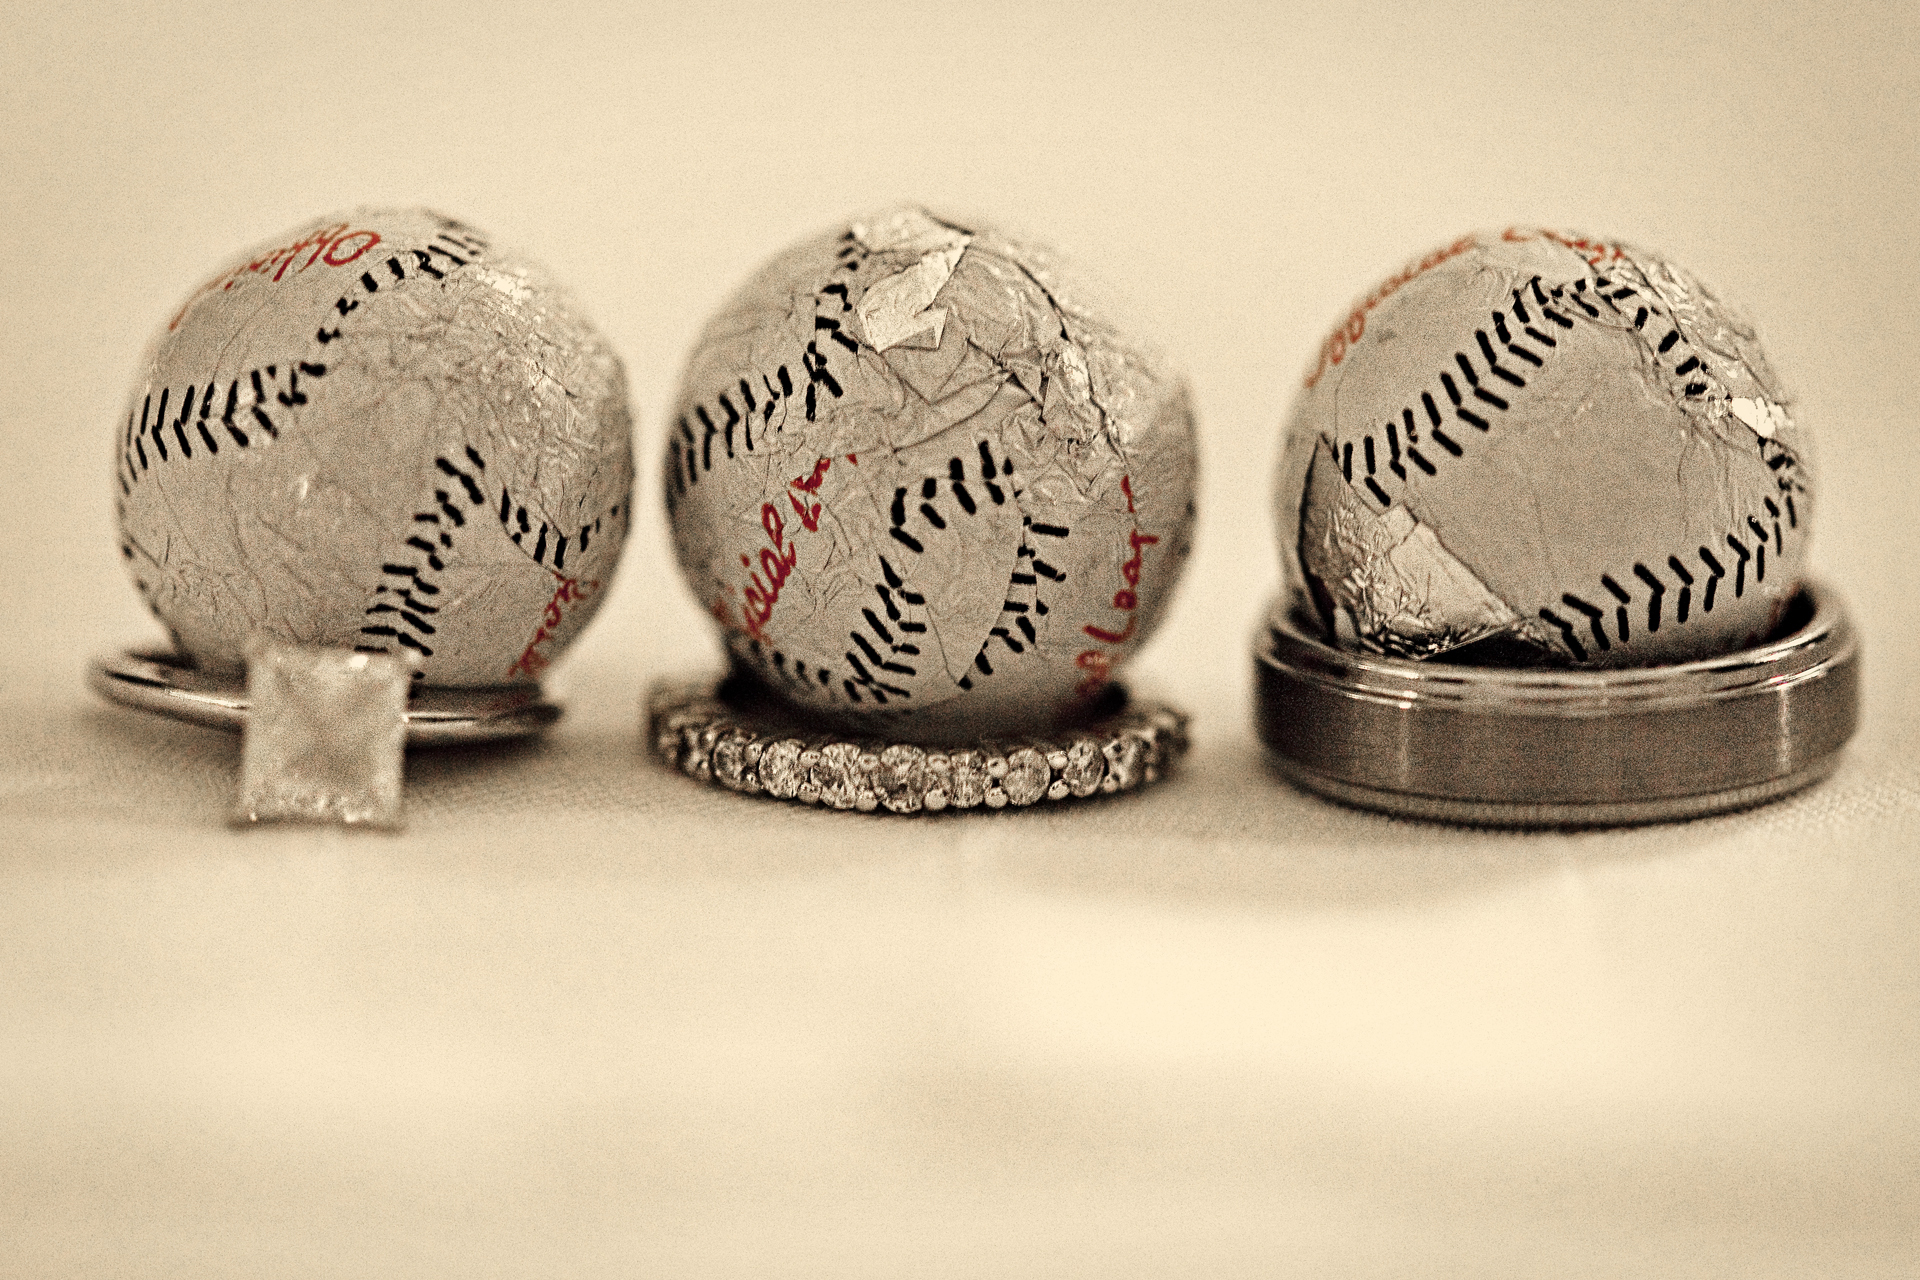 Rings, Wedding, Baseball, Peachtree studio